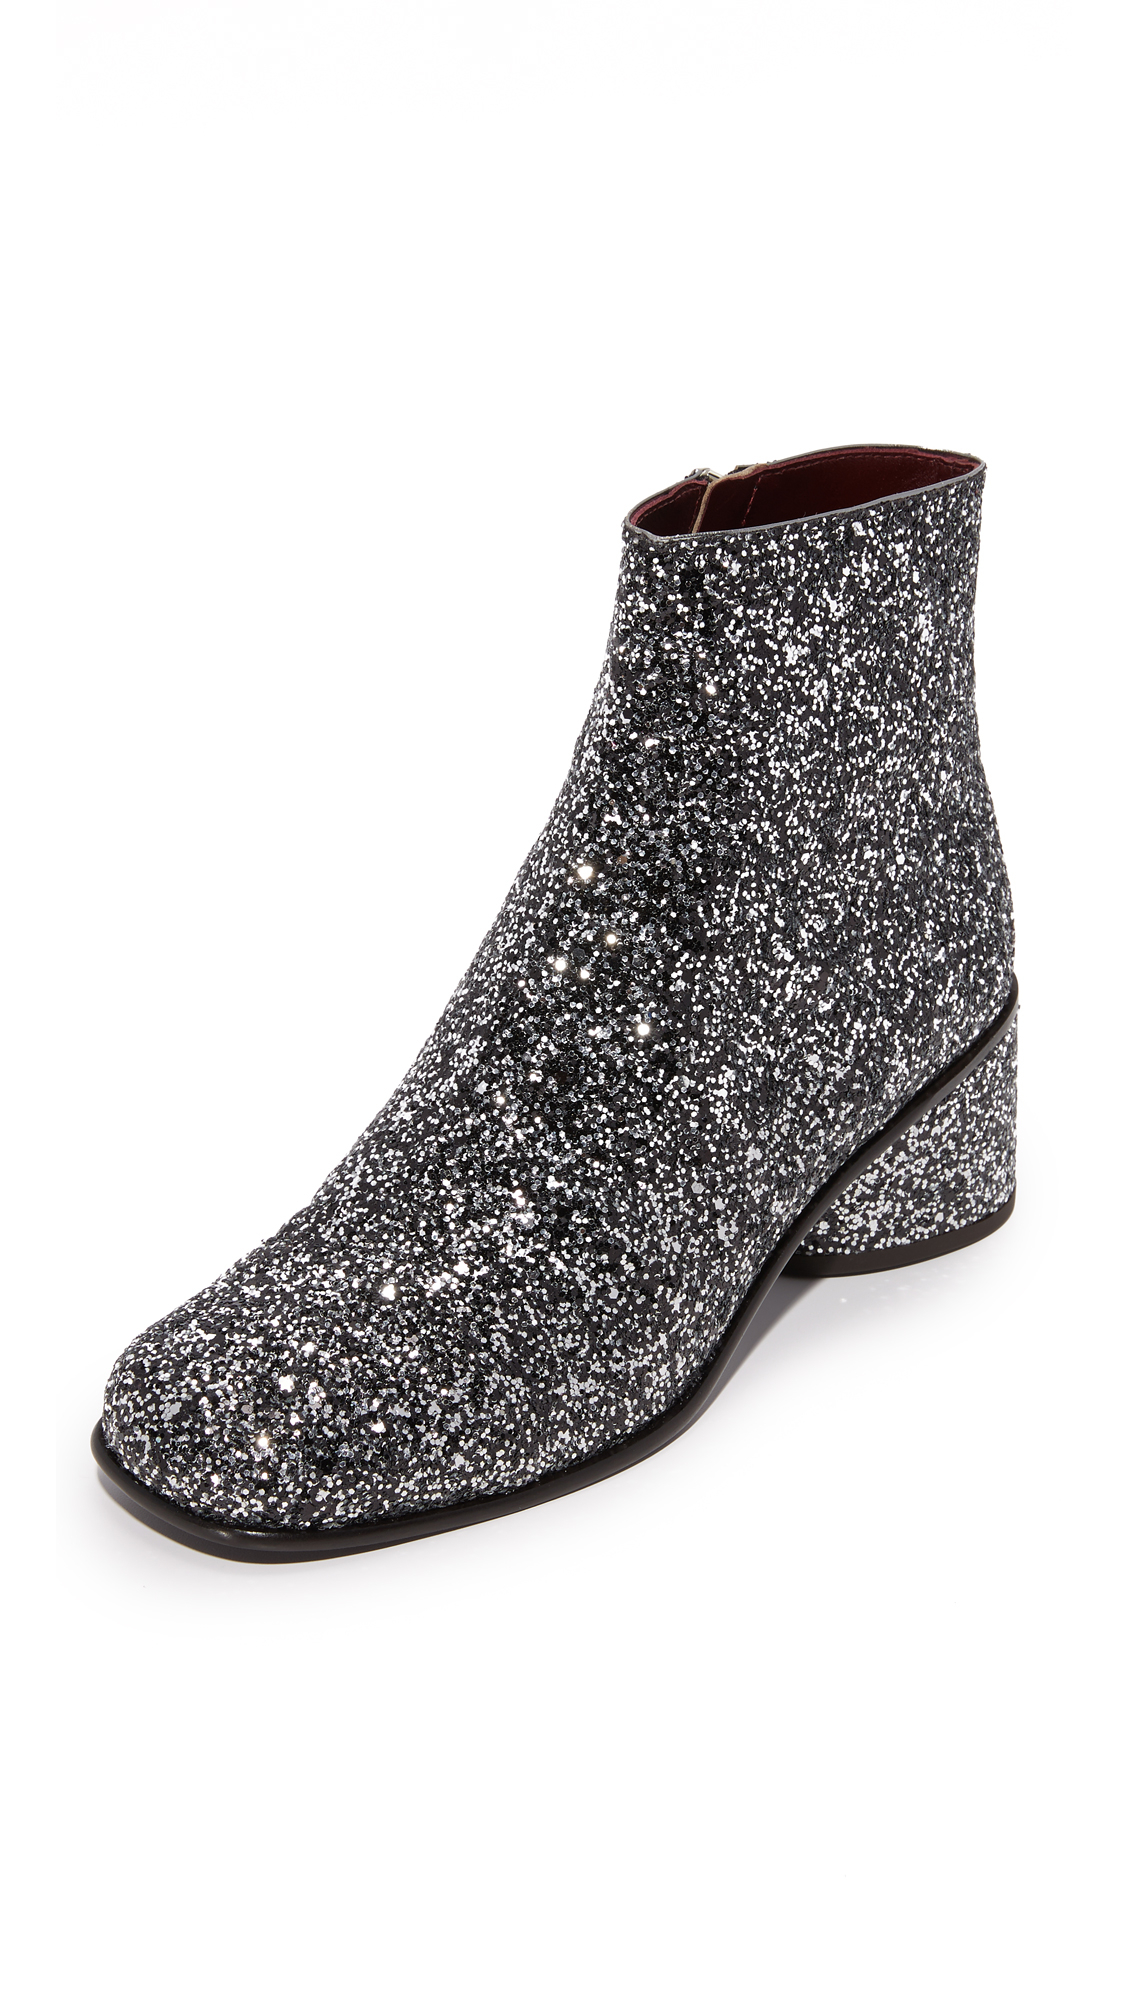 Marc Jacobs Camilla Ankle Booties - Silver Multi